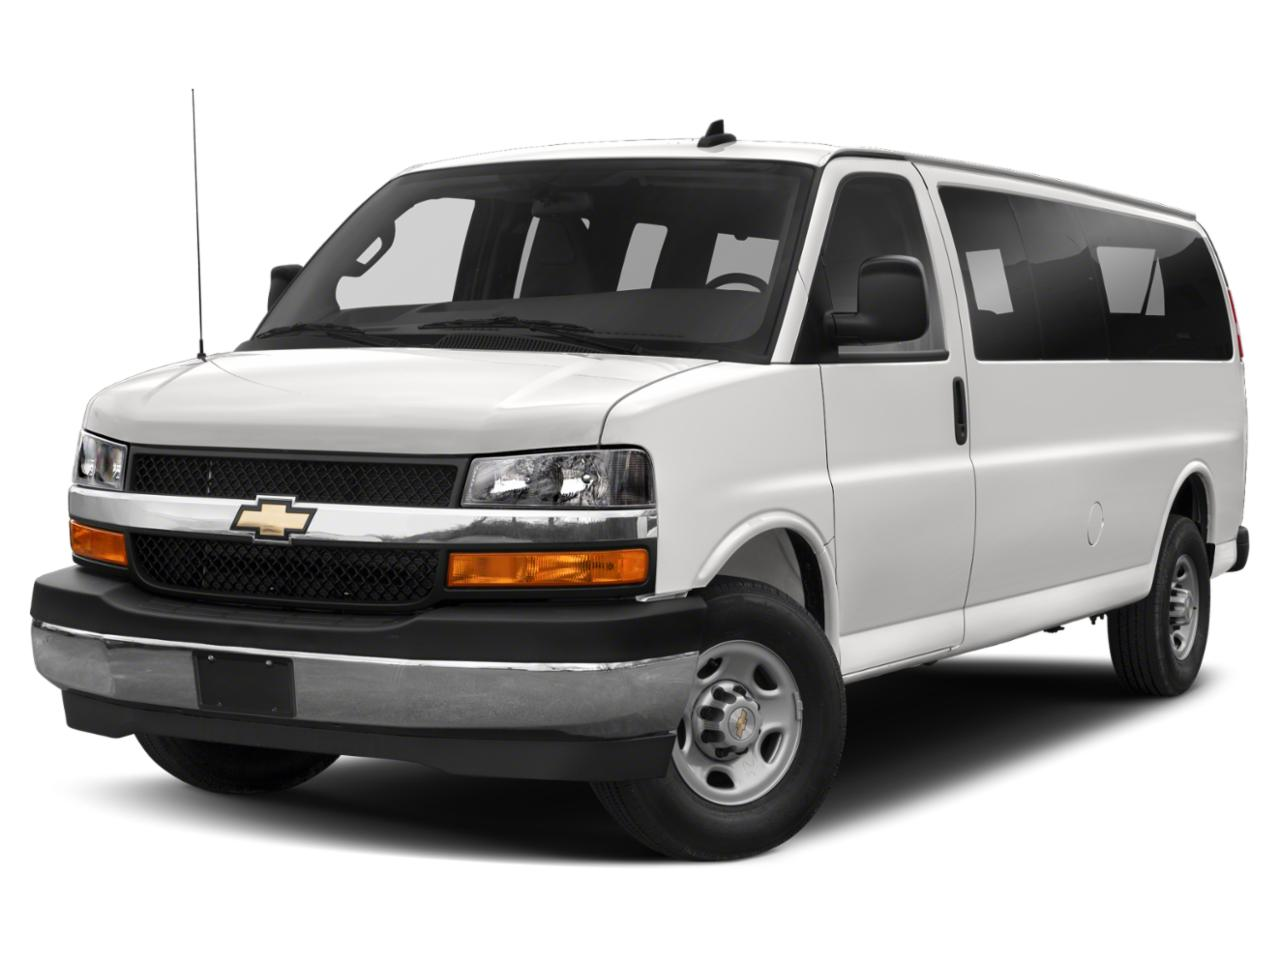 2020 Chevrolet Express Cargo Van Vehicle Photo in Milford, OH 45150